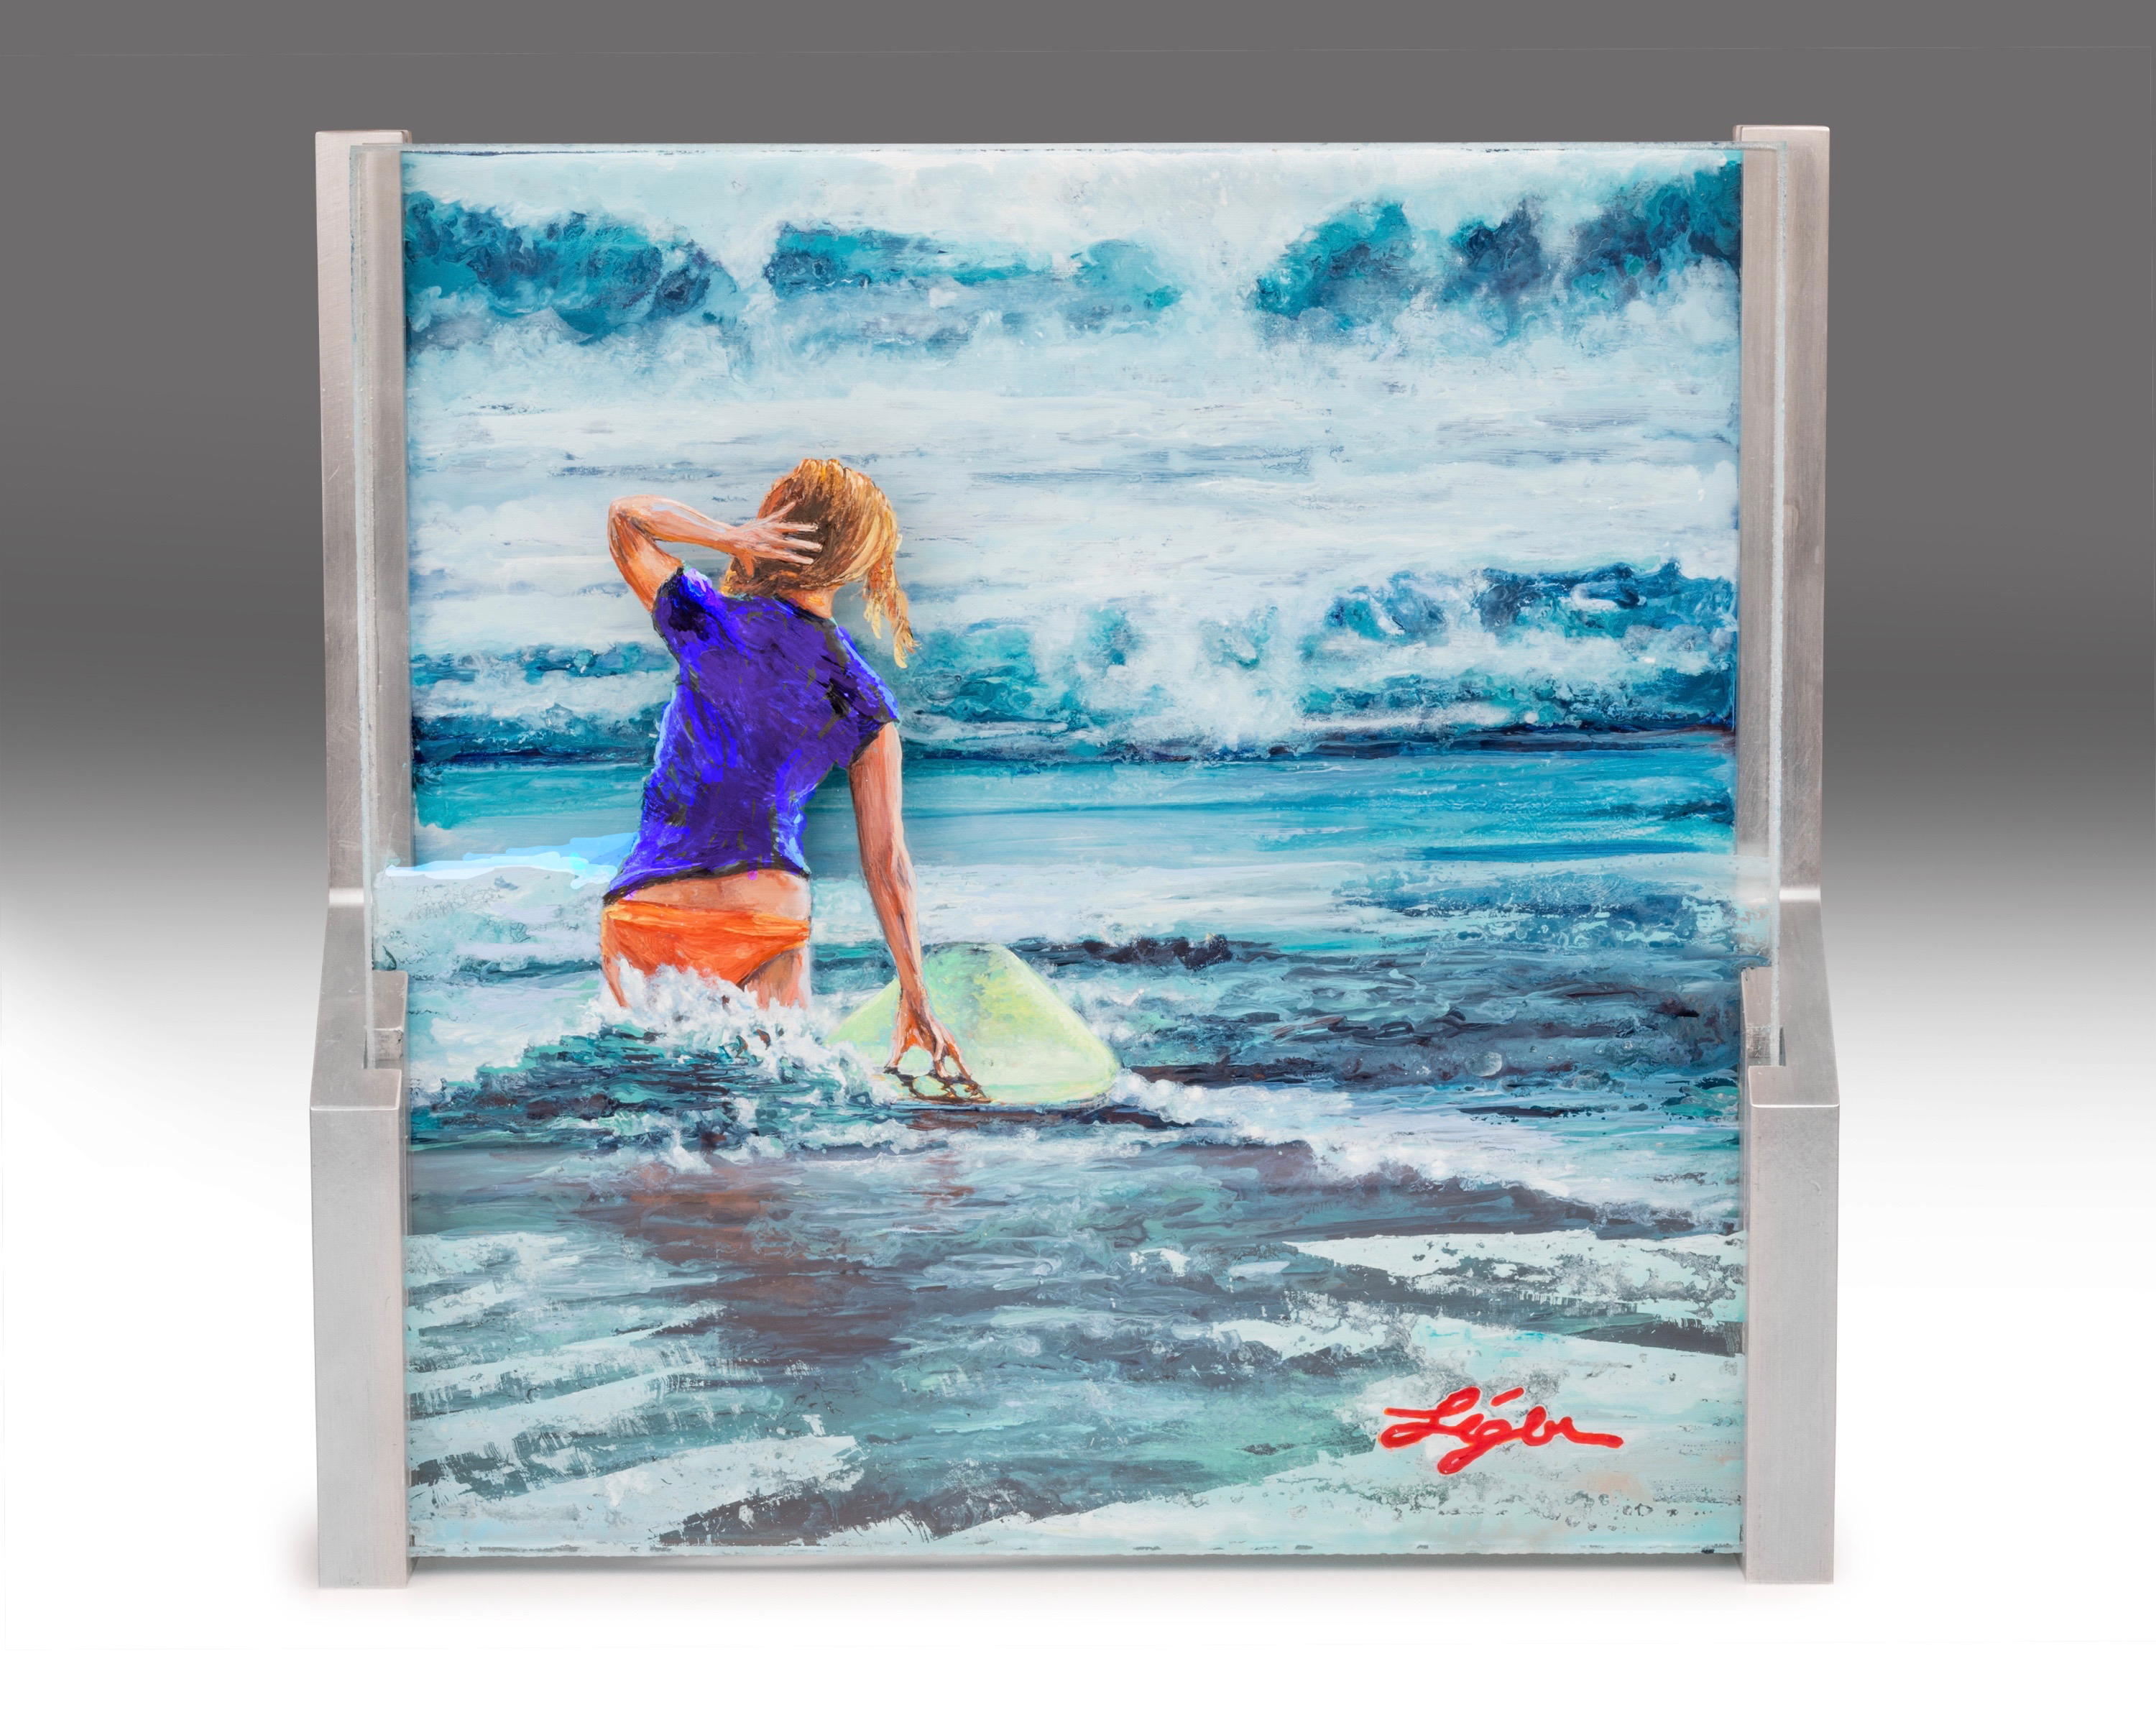 Surfer Girl Chasing Waves